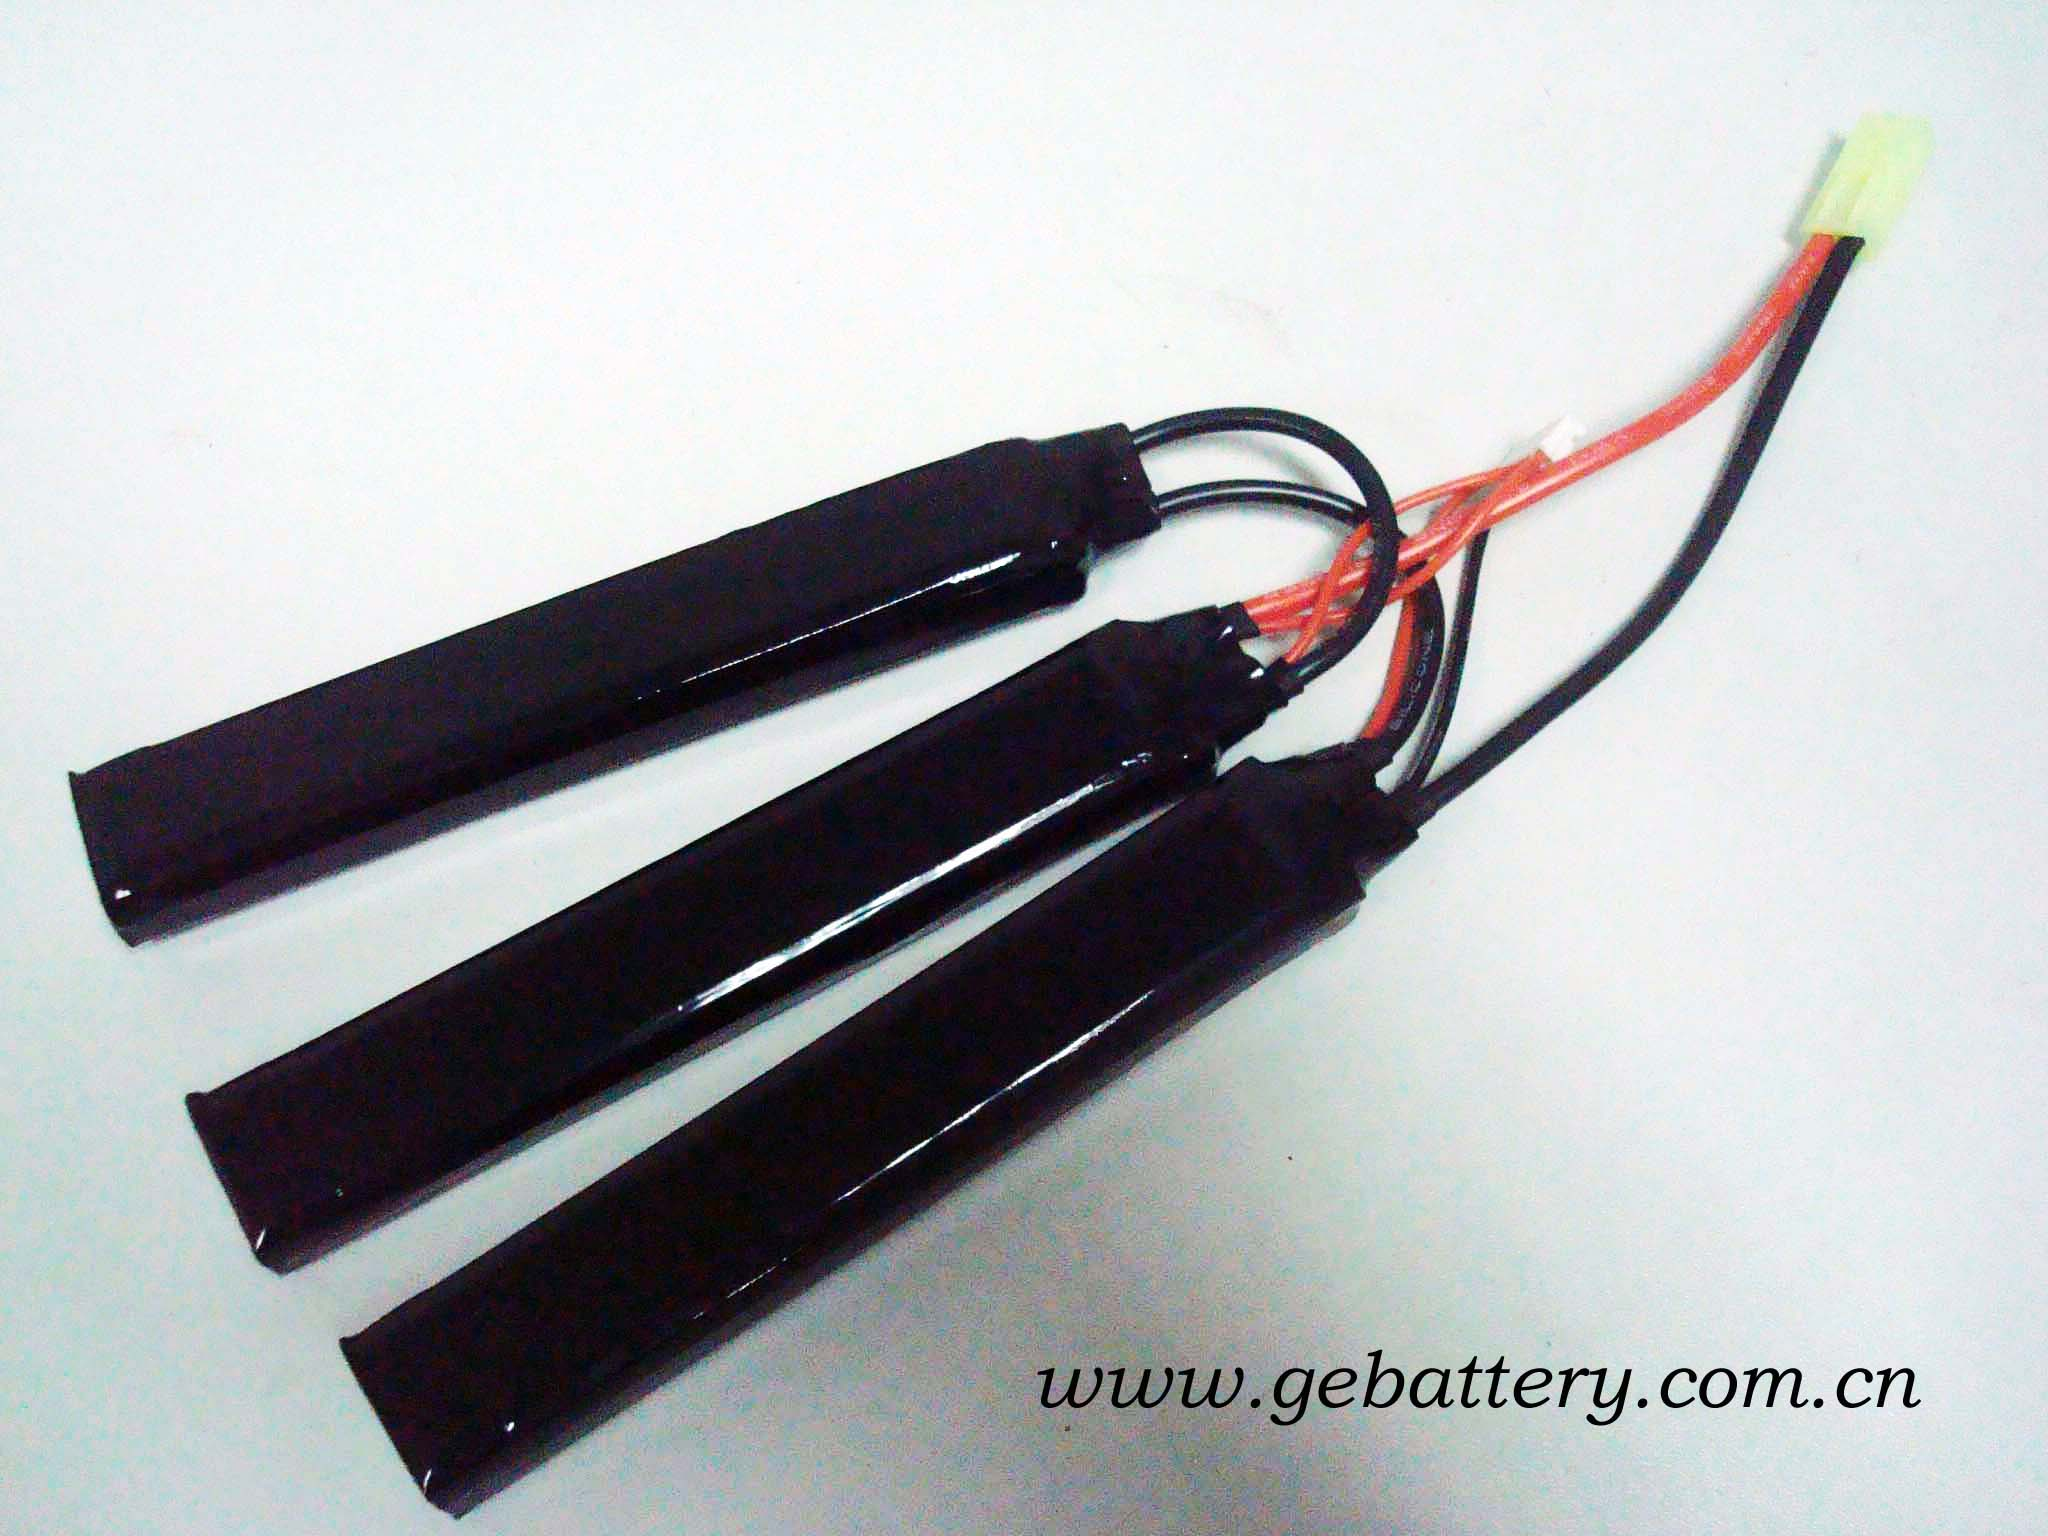 Lipo battery for airsoft gun, 11.1V2200mAh...